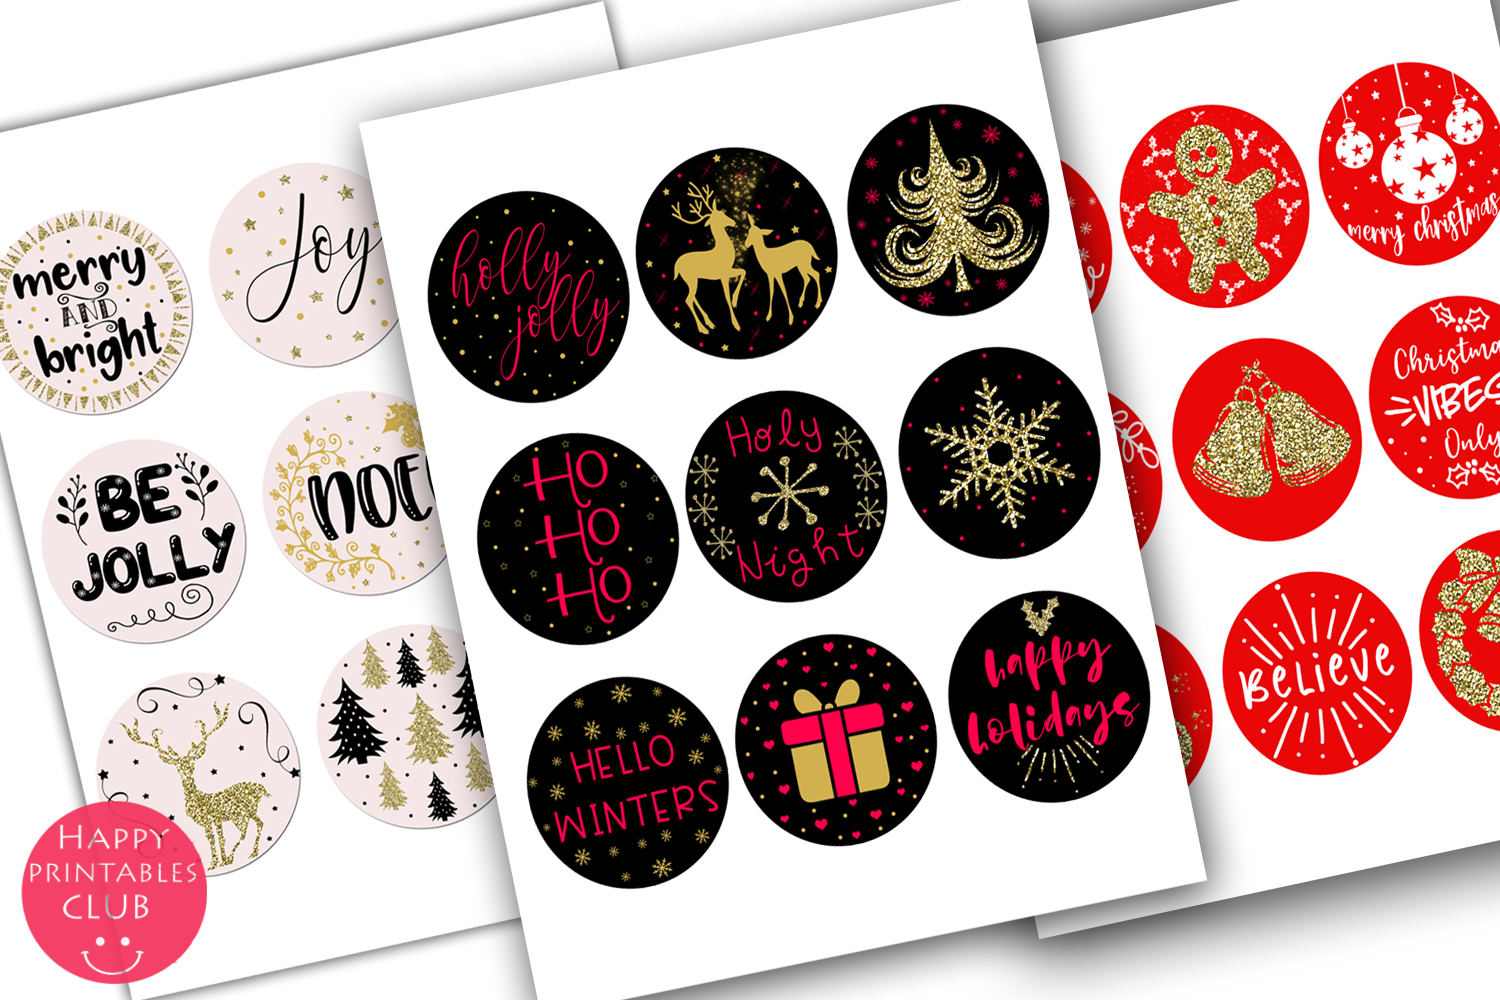 Cute Christmas Round Stickers- Holiday Round Stickers example image 5